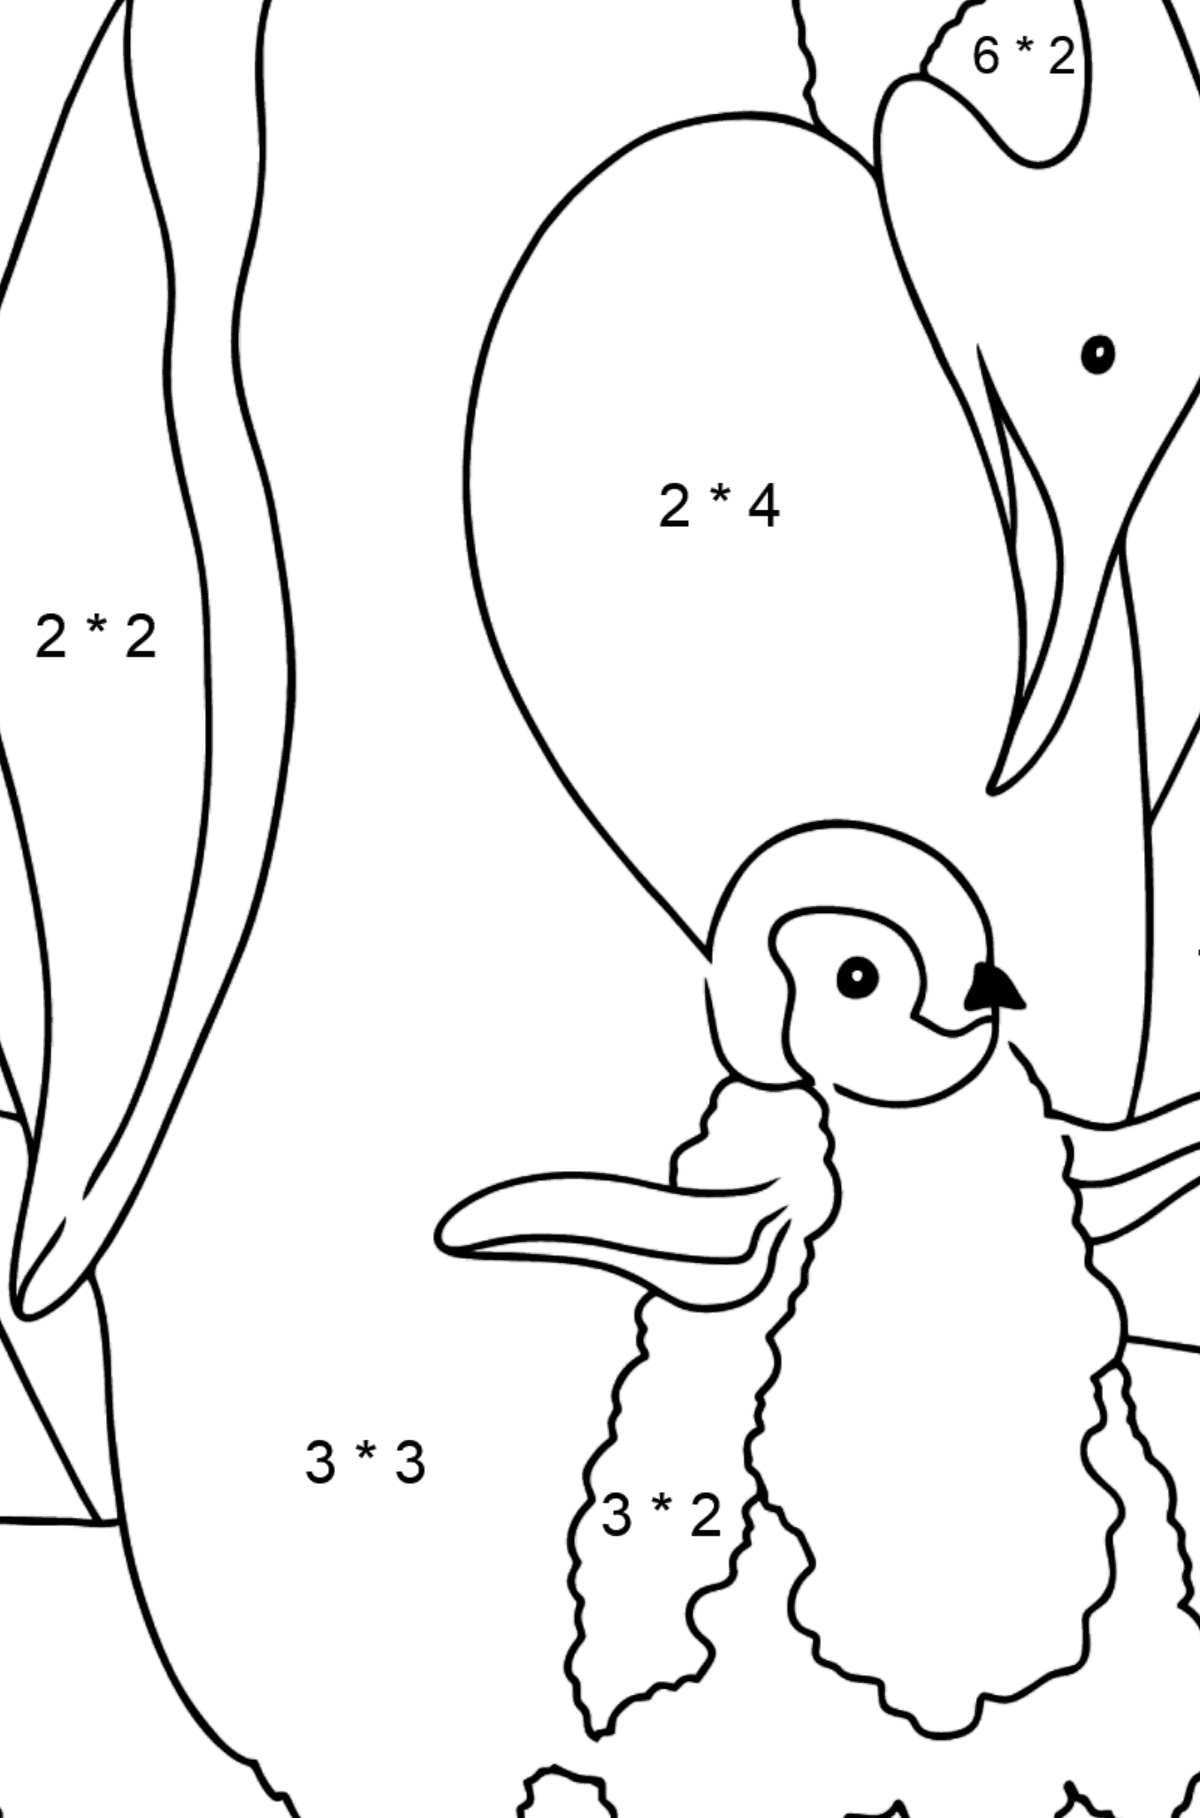 Coloring Page - A Caring Penguin - Math Coloring - Multiplication for Kids